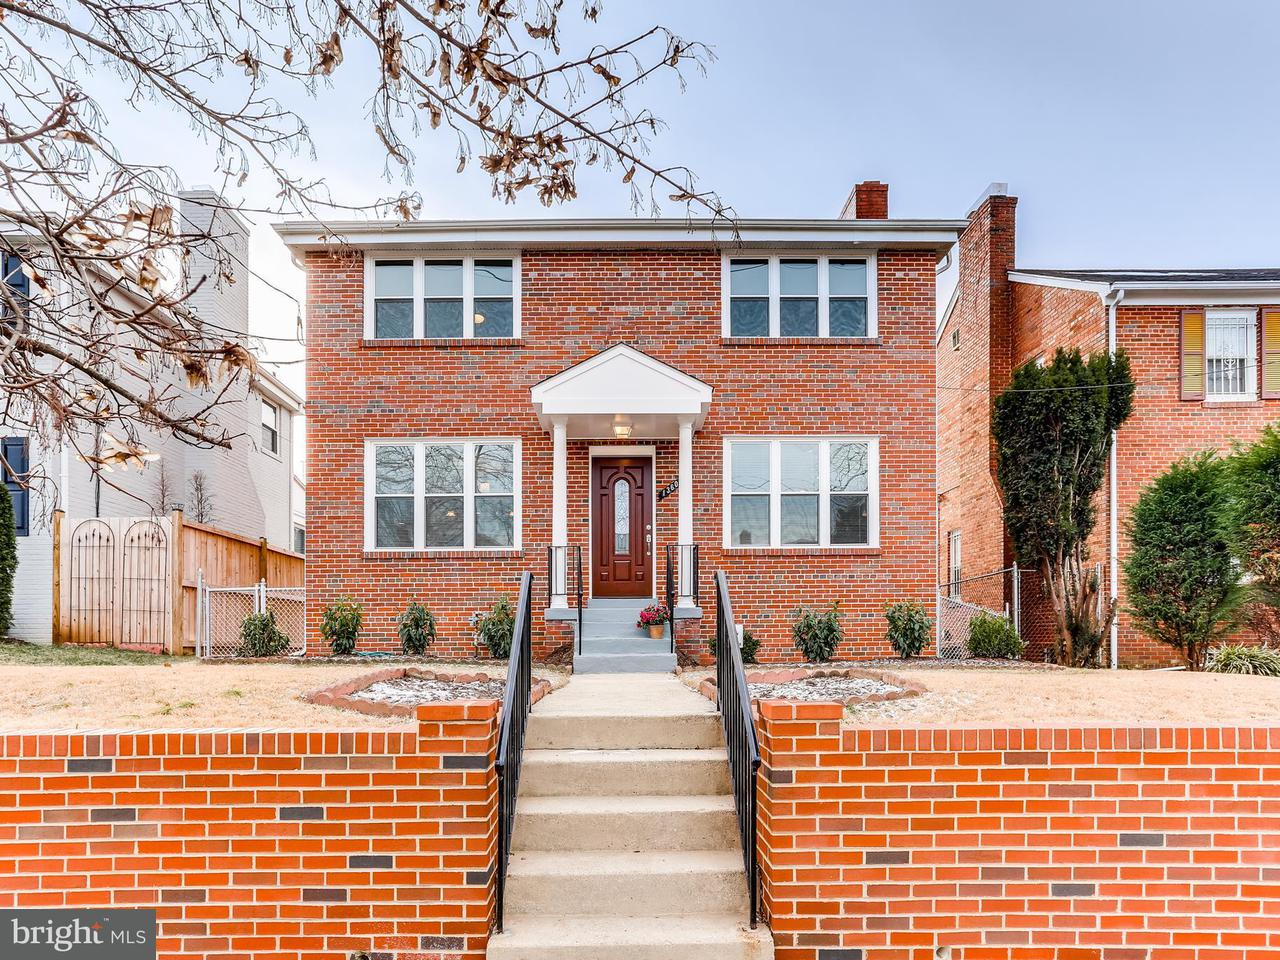 Single Family Home for Sale at 1360 Underwood St Nw 1360 Underwood St Nw Washington, District Of Columbia 20012 United States